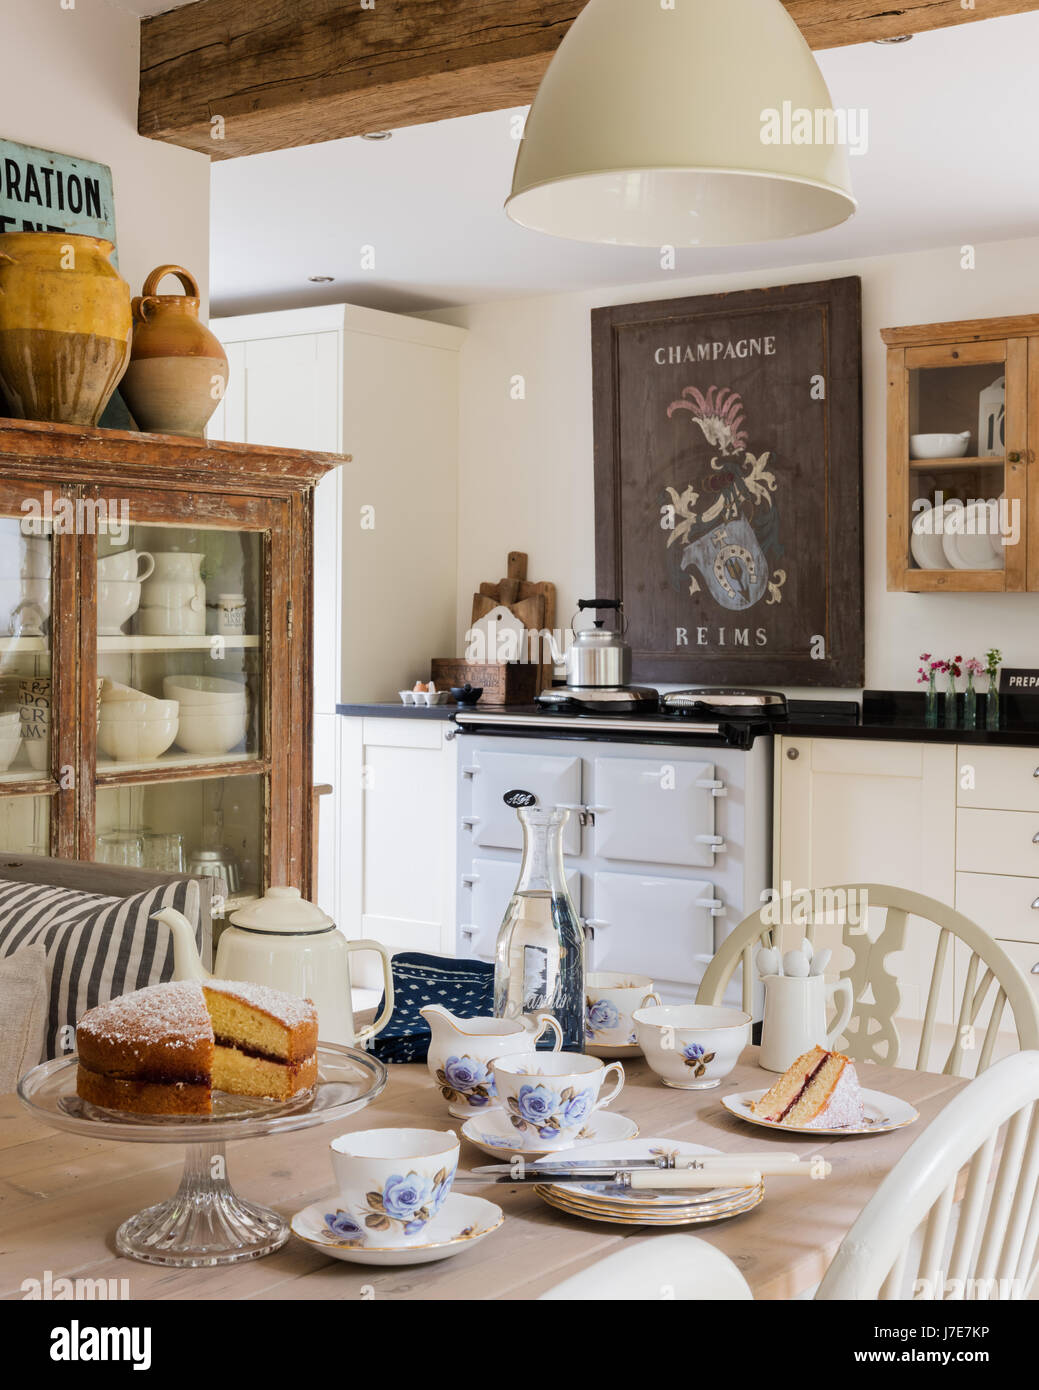 Vintage French wooden champagne sign above Aga in rustic kitchen with French feel. The table is laid for tea with Victoria sponge cake and the display Stock Photo